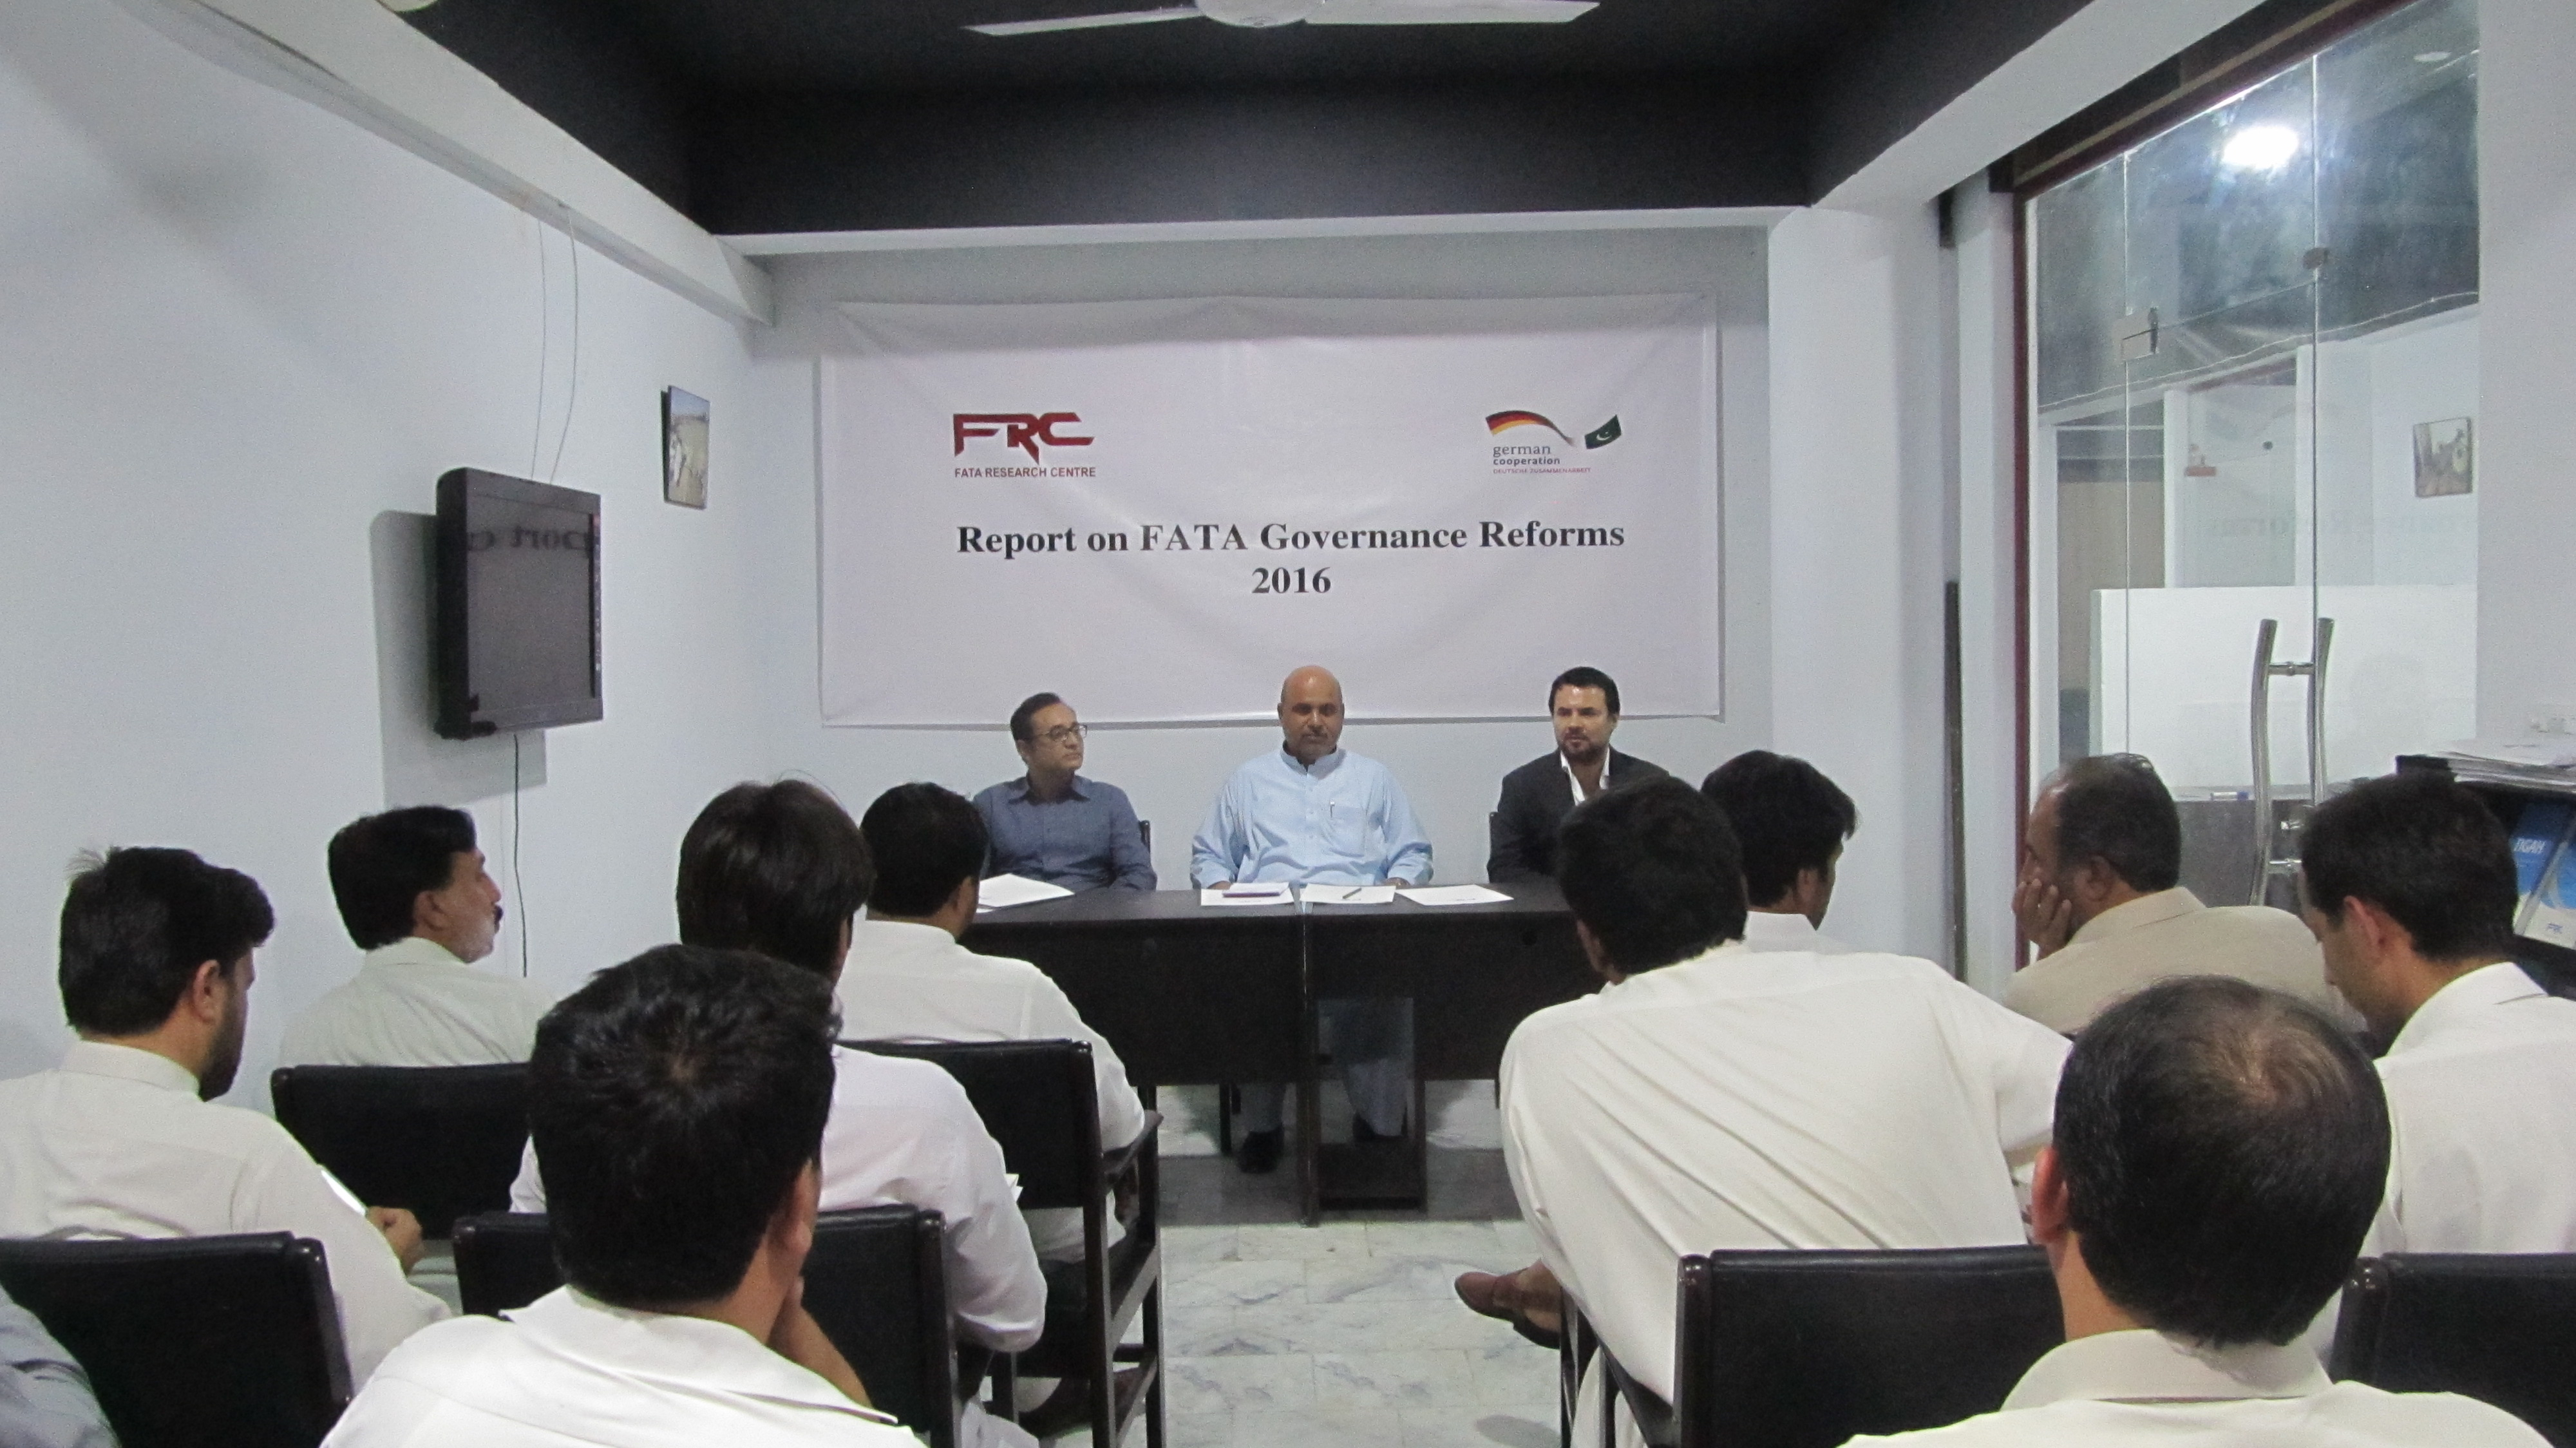 """Two-Day Workshop on """"Future of Governance Reforms in FATA"""